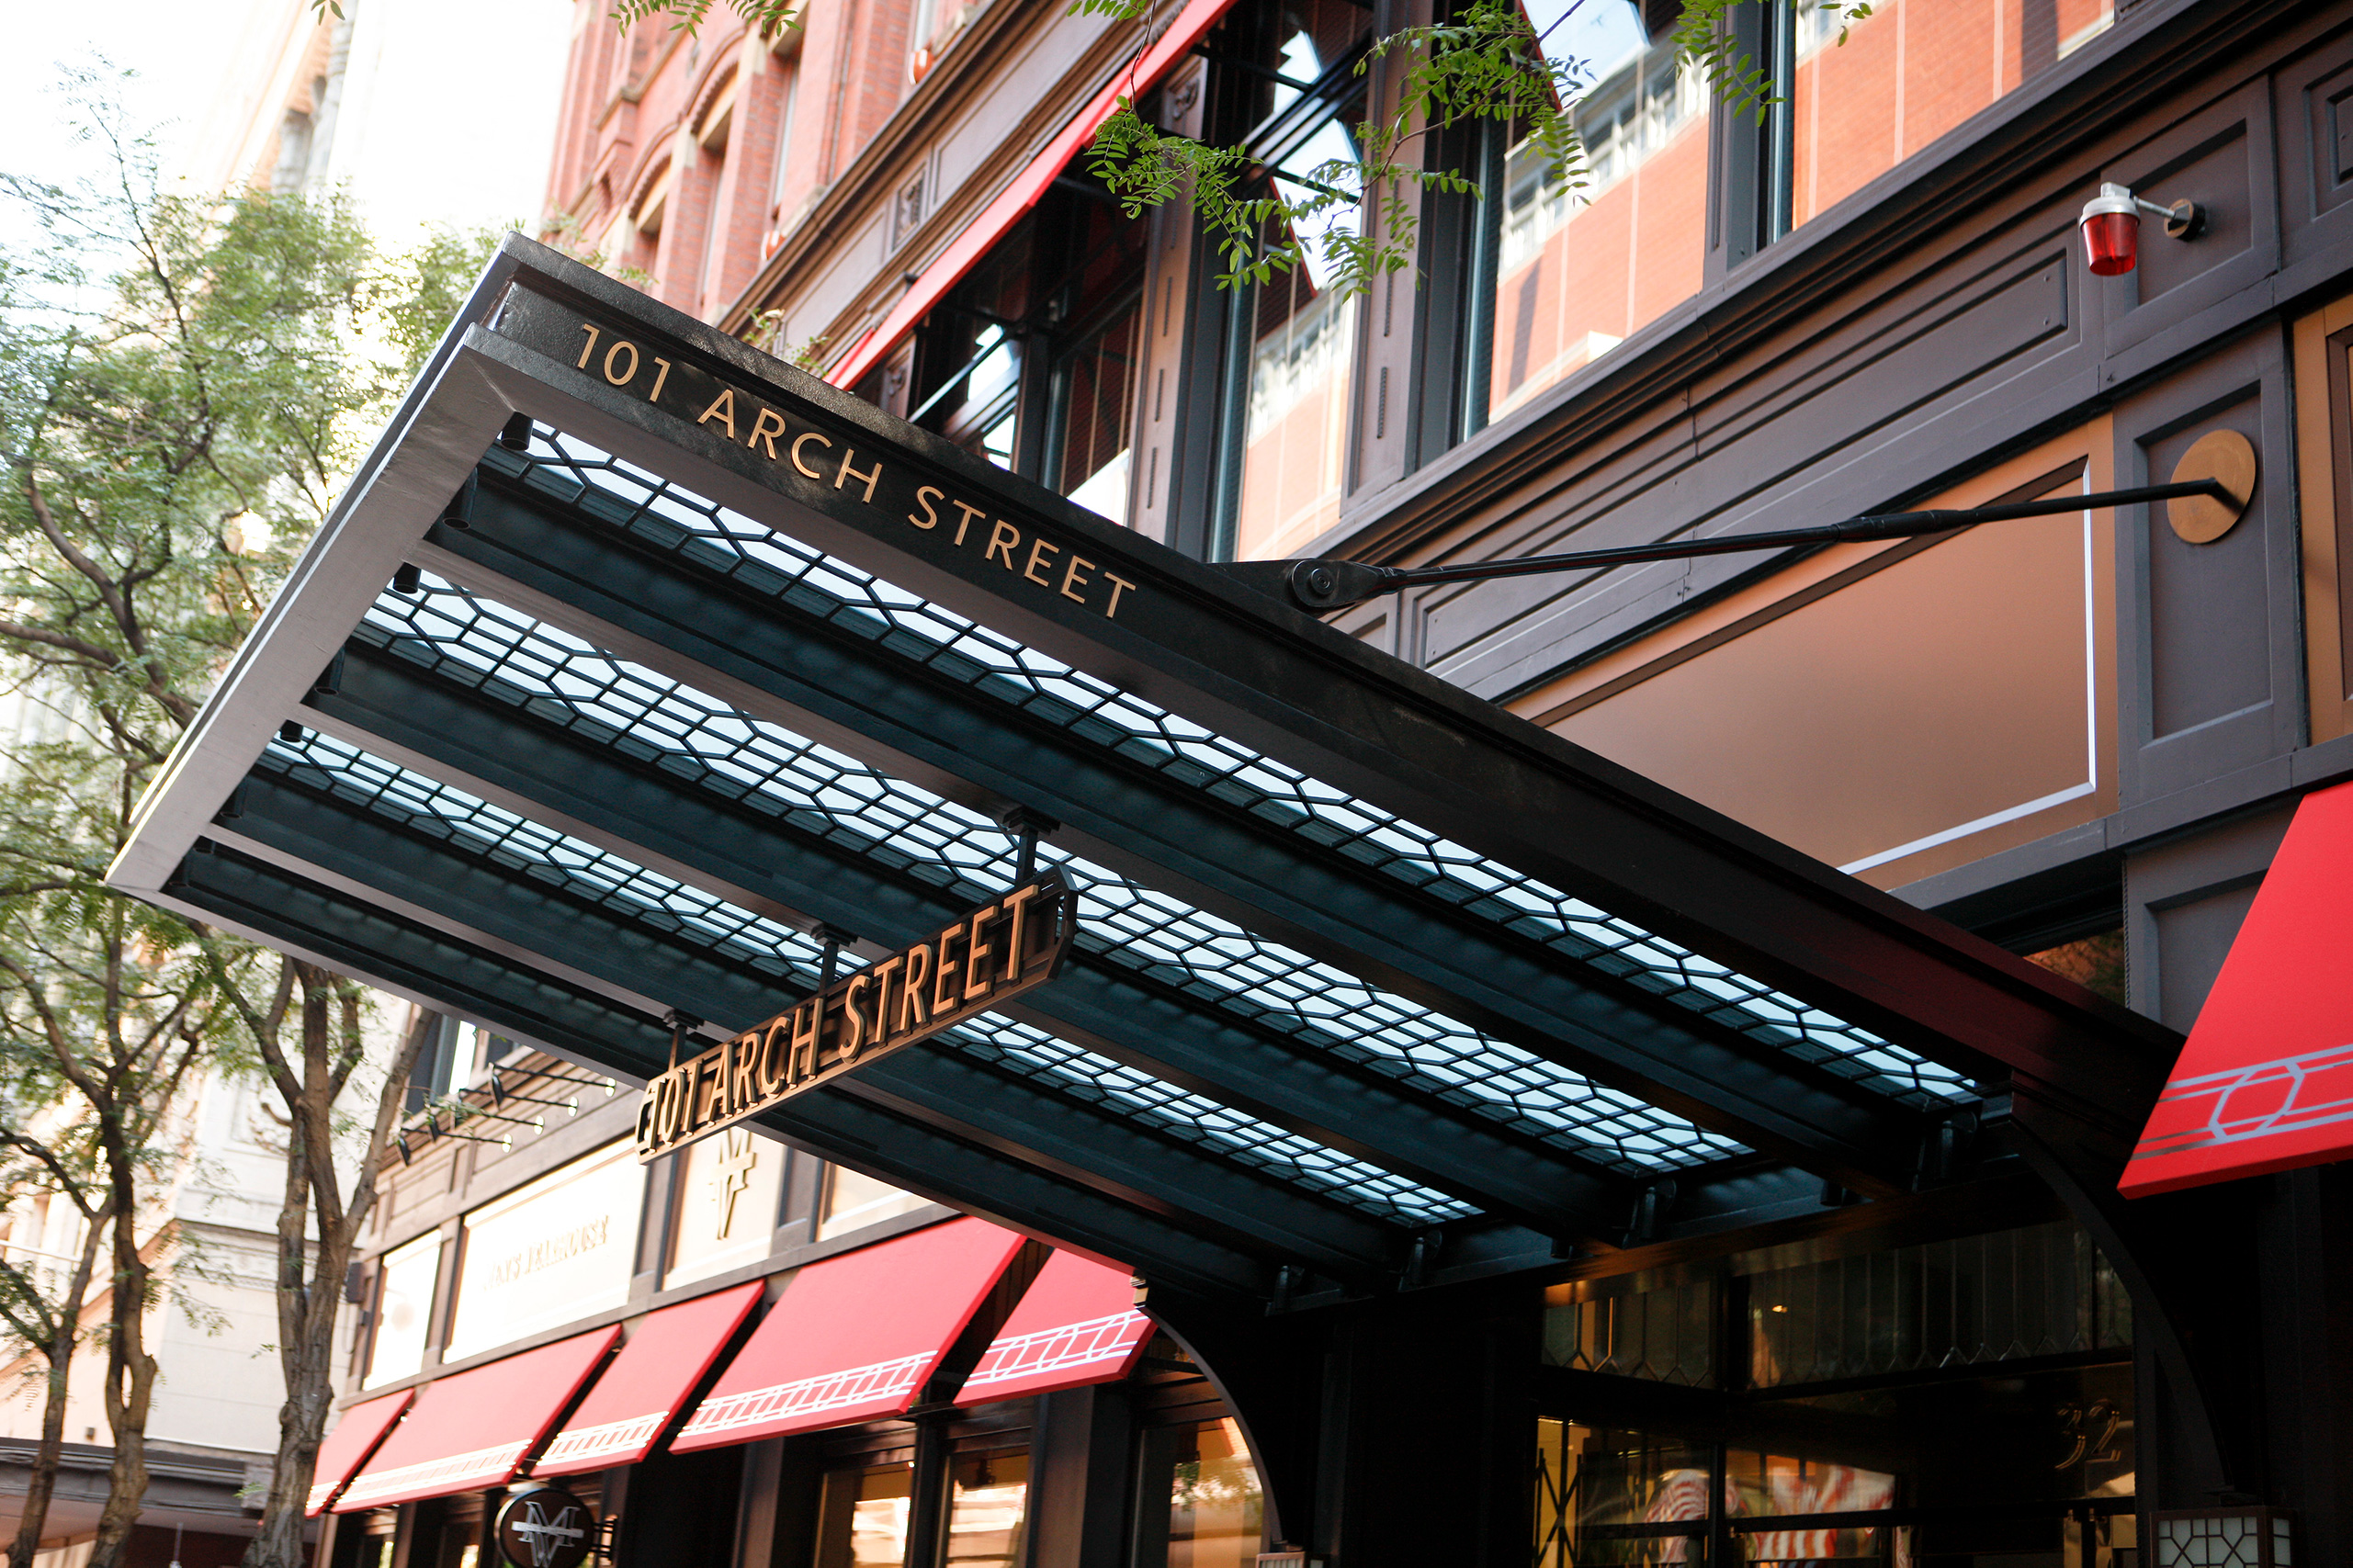 101 Arch St, Boston, MA Portico – supported by Ronstan Carbon Steel Tension Rods